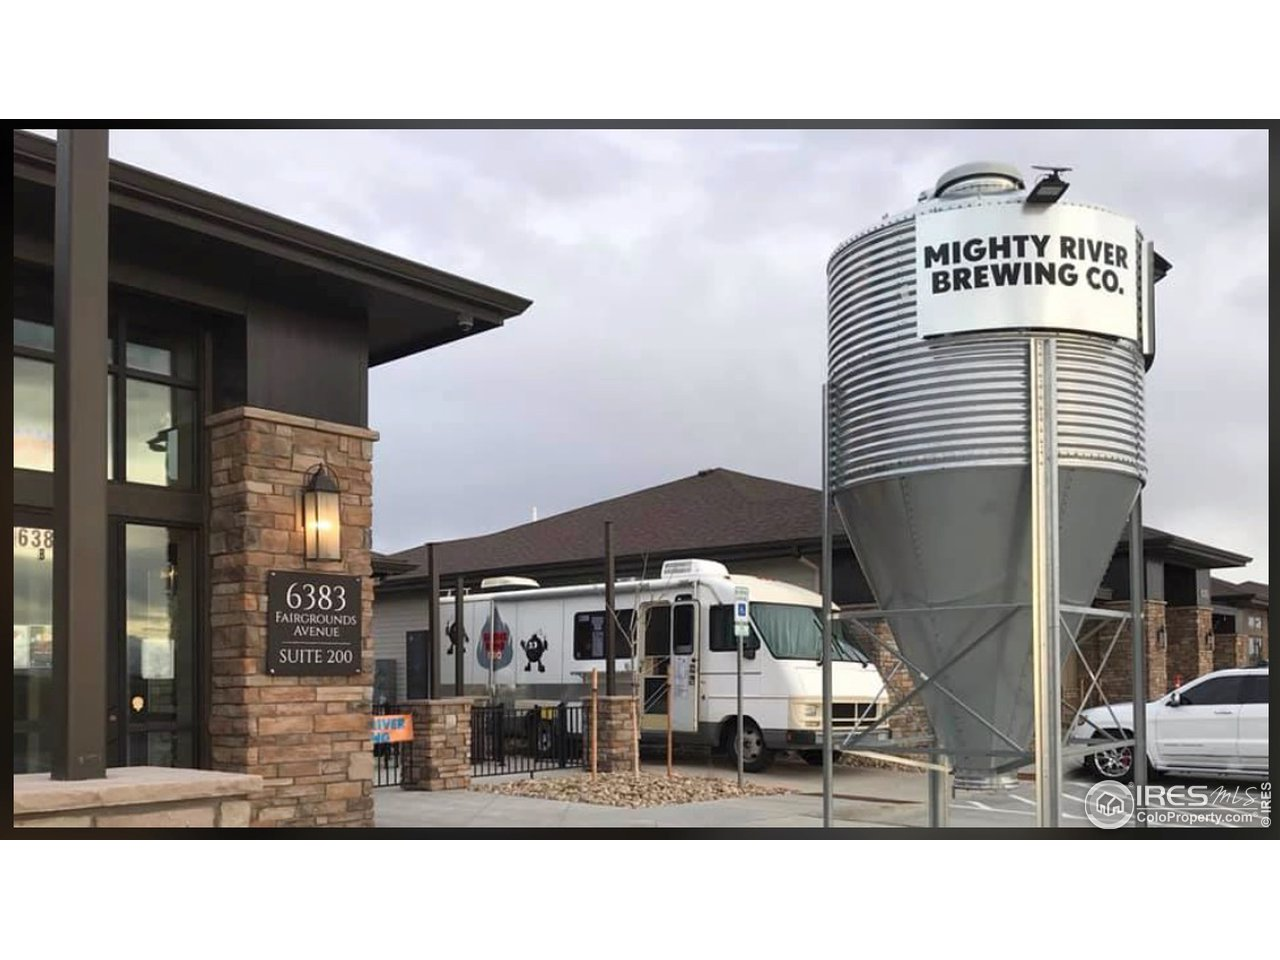 Enjoy fine dining and breweries all within walking distance!